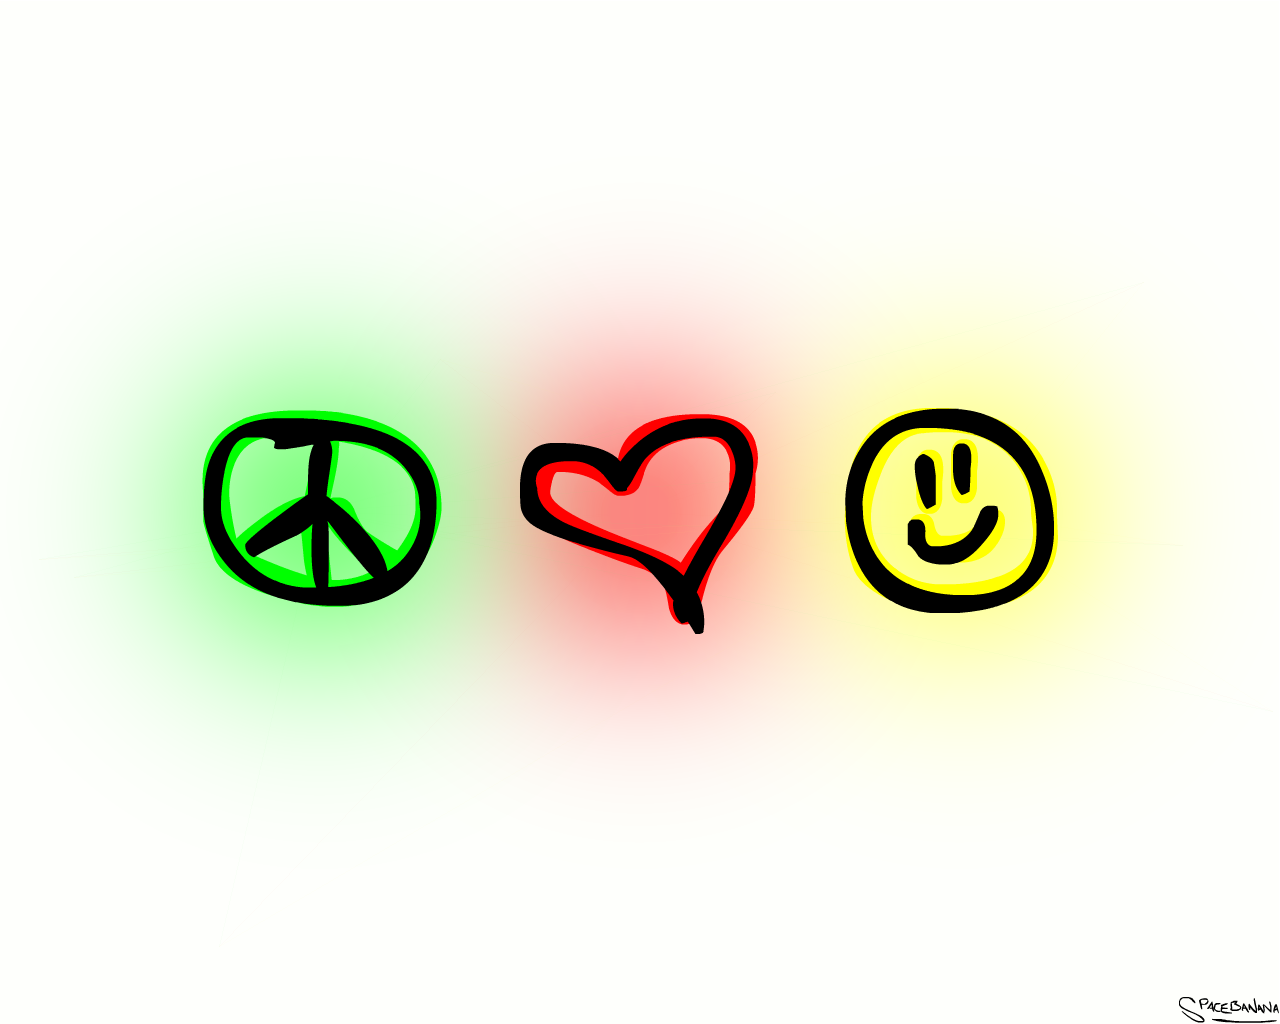 Peace, Love and Happiness by ~SpaceBanana on deviantART